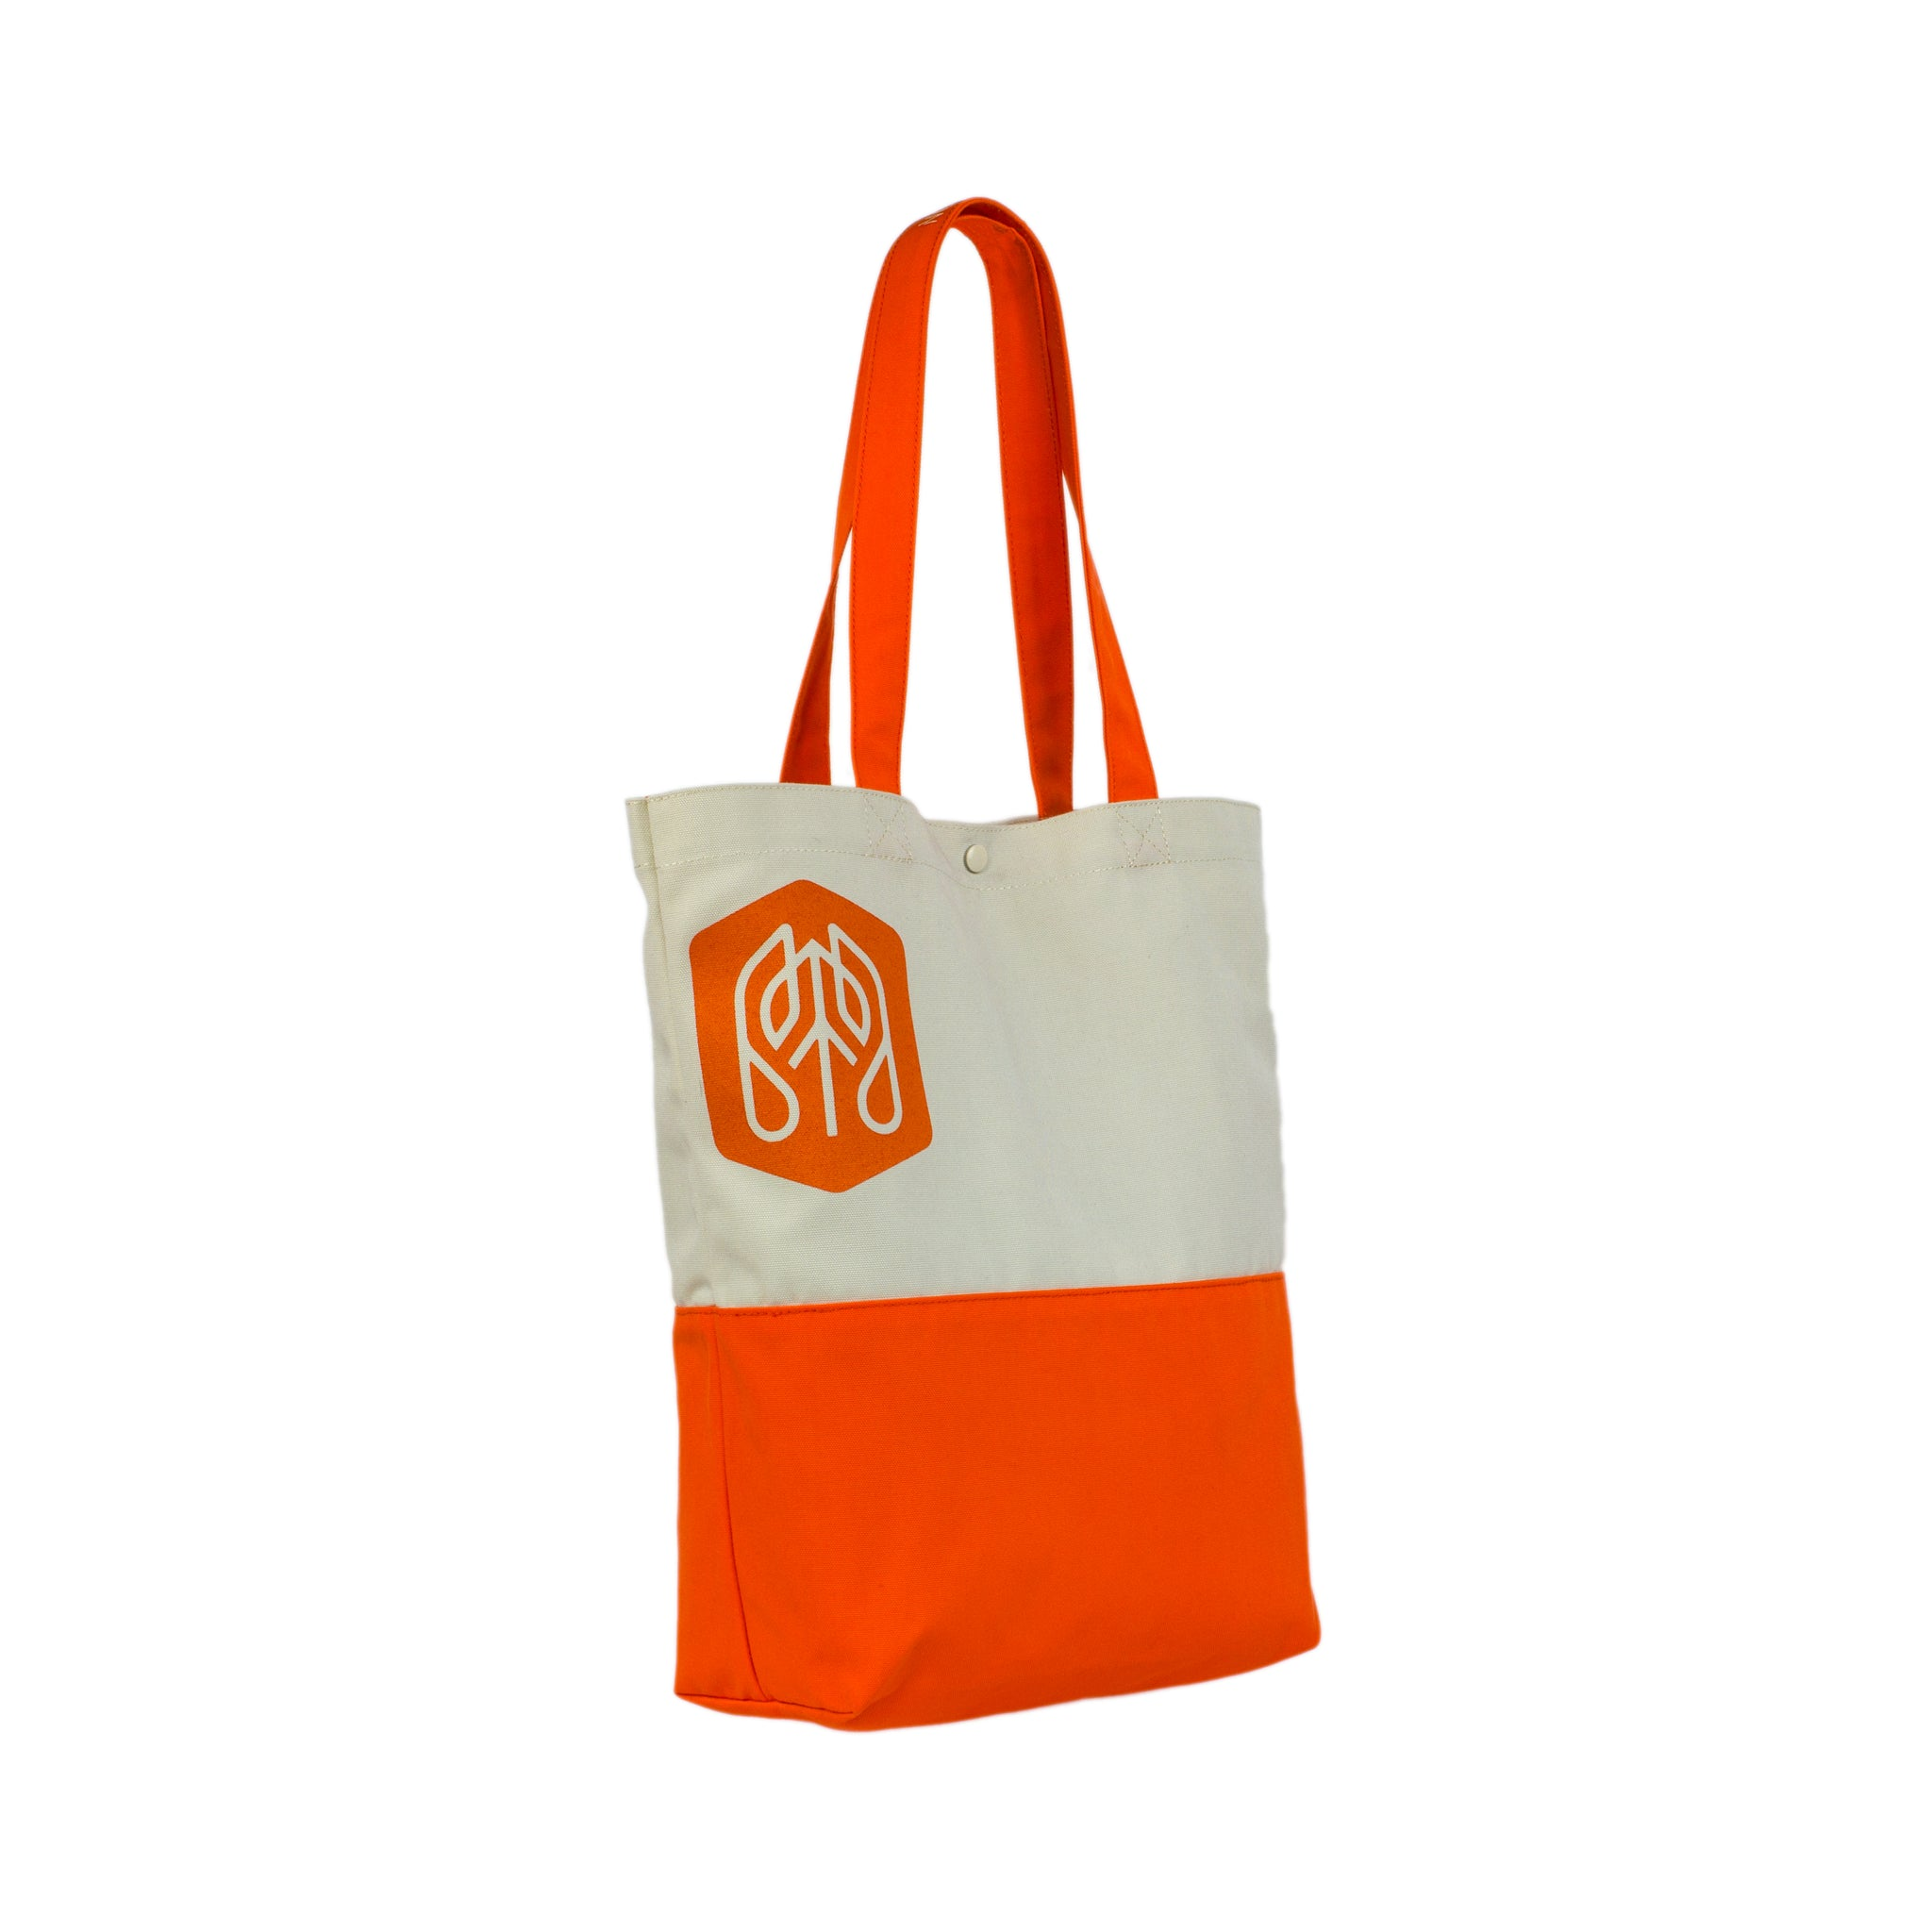 Vibrant_Orange - Common Ground Utility Tote Bag Three Quarter View